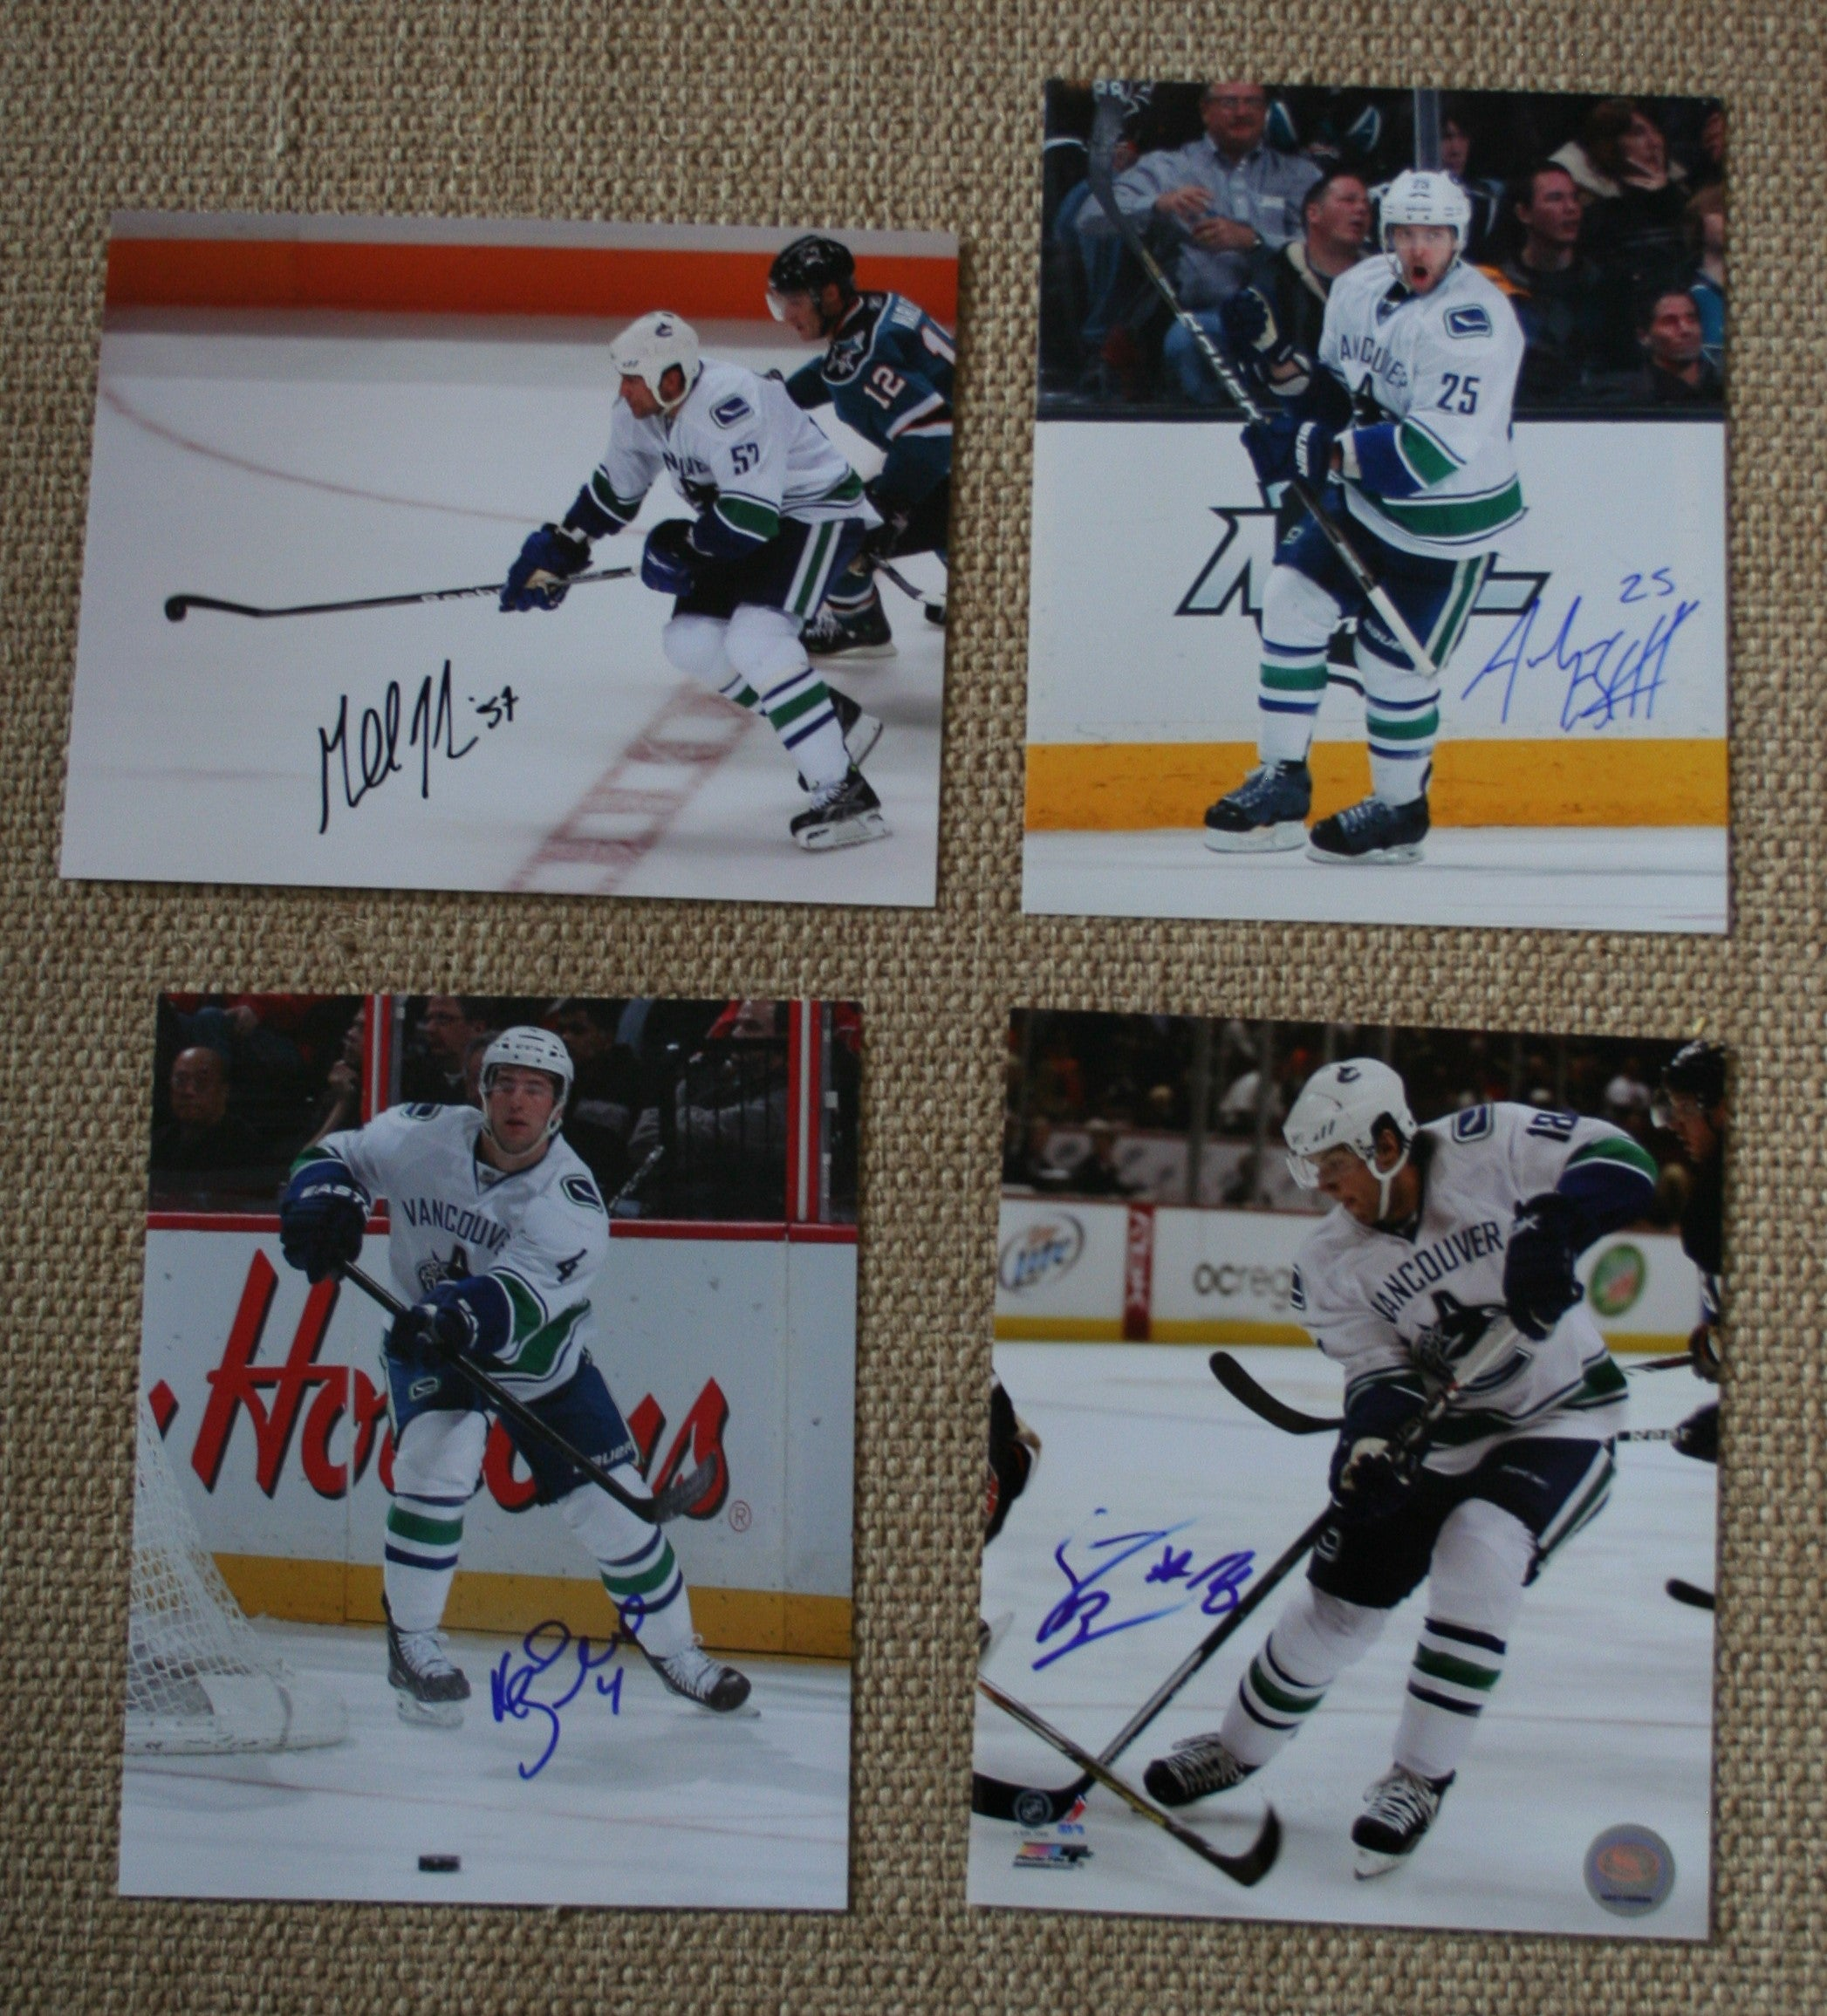 Lot of 4 Autographed Vancouver Canucks 8x10 Photos Desbiens, Ebbett, Ballard